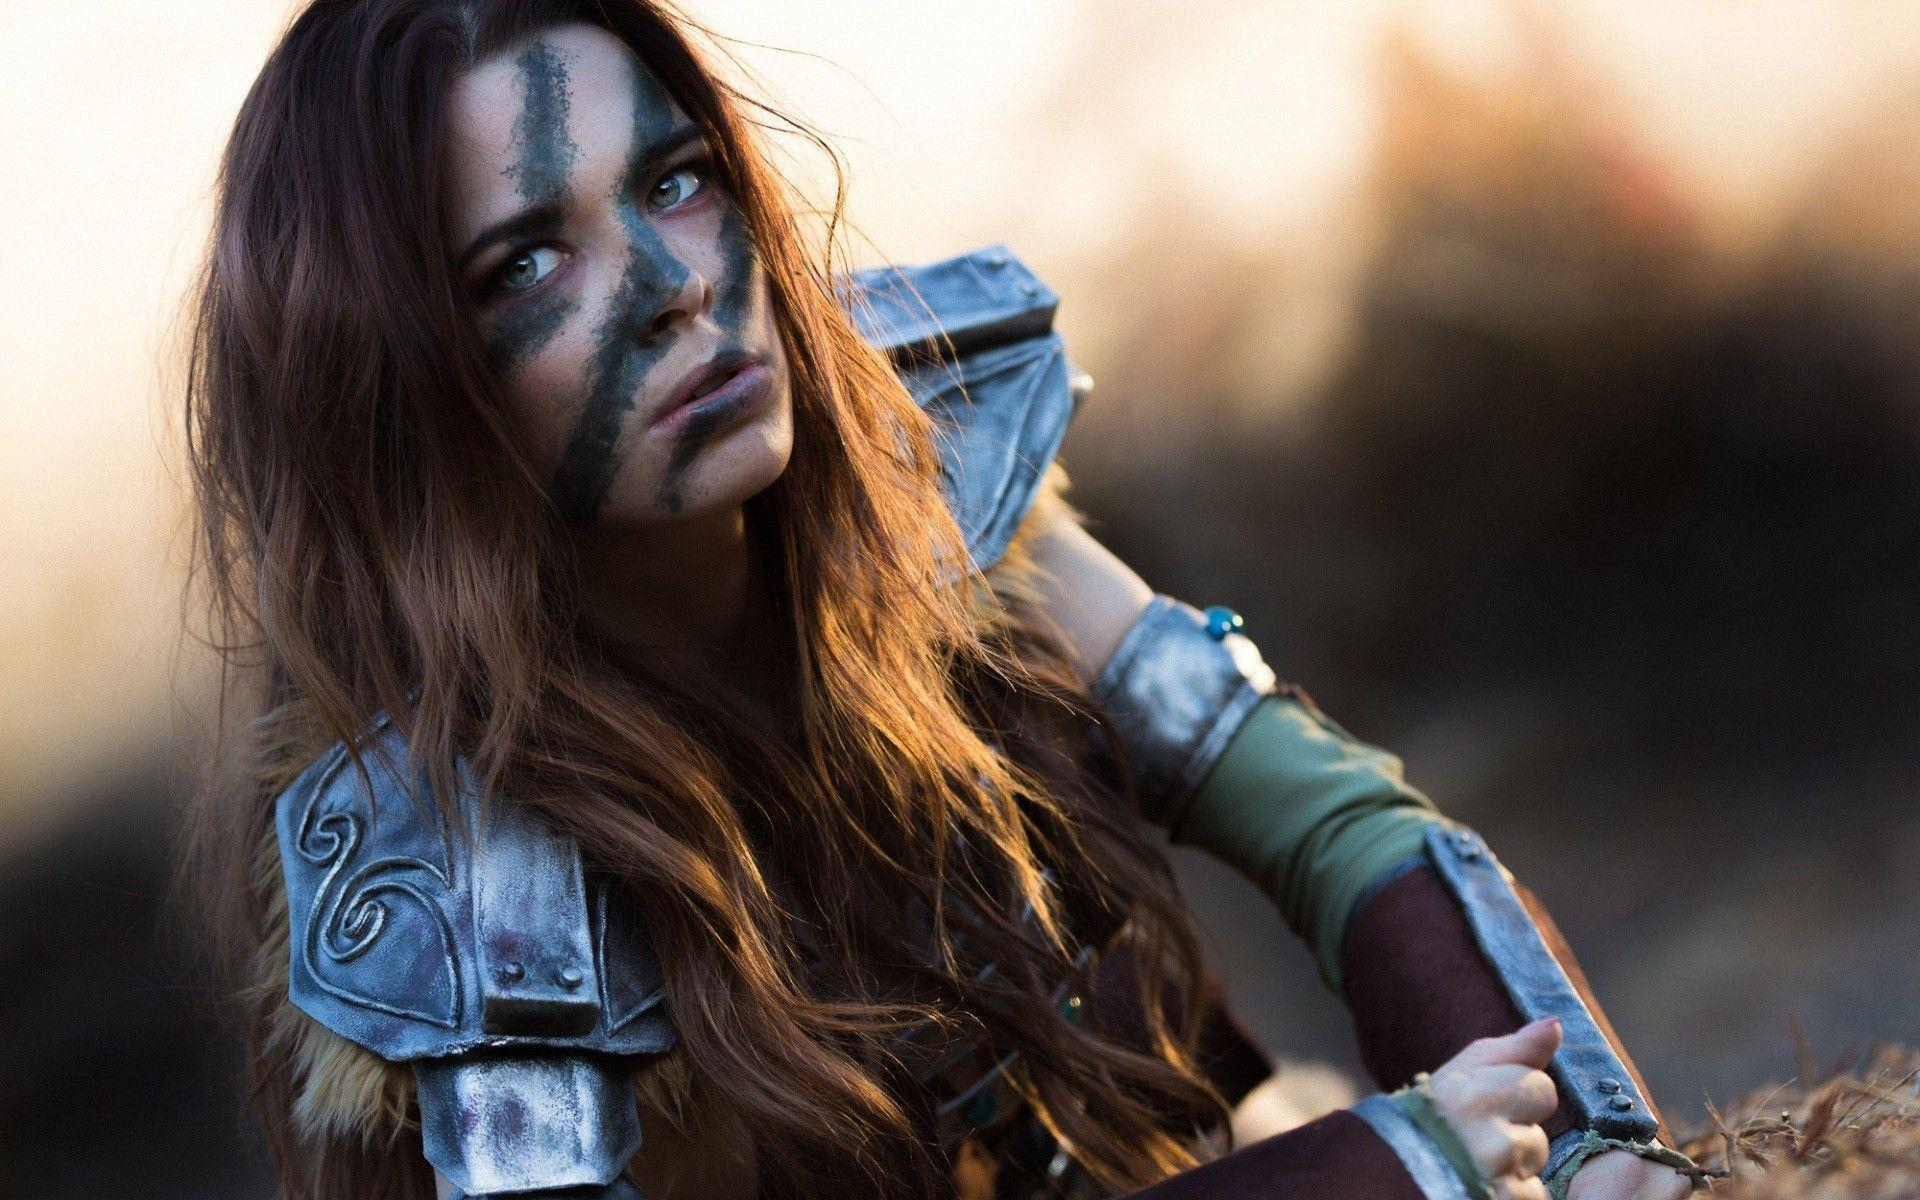 Aela the Huntress cosplay Wallpapers